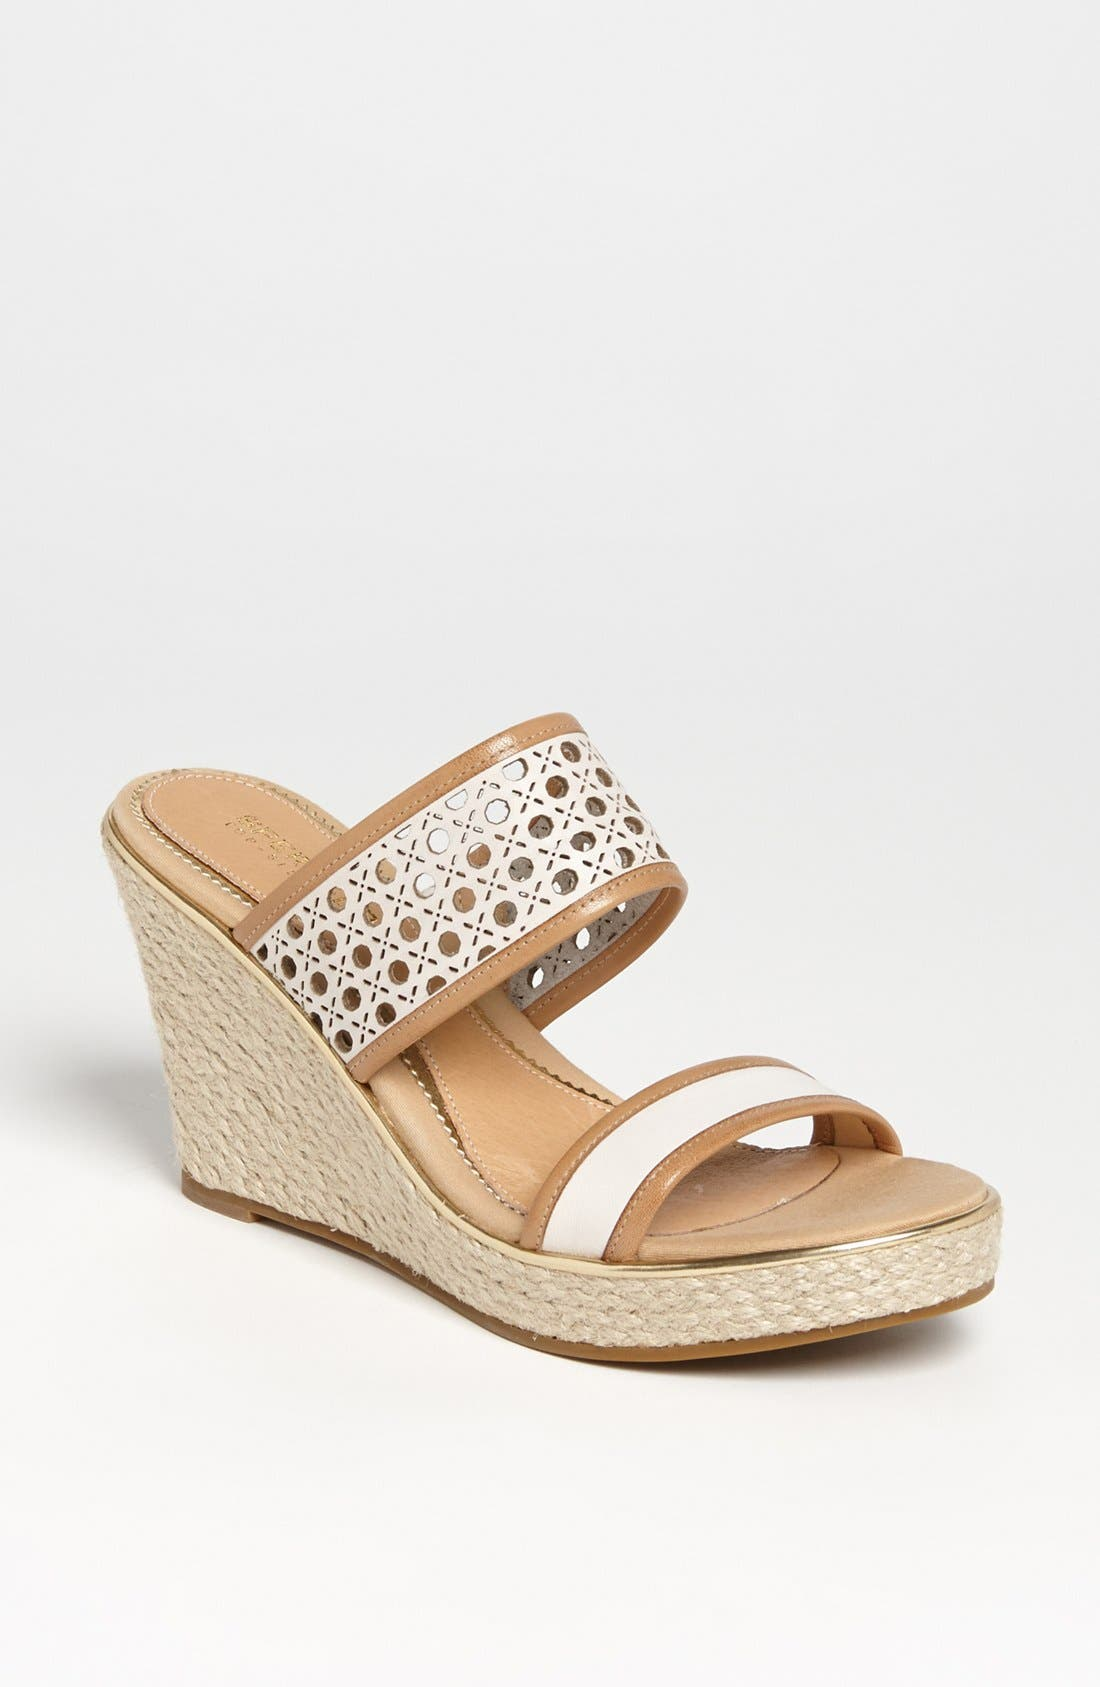 Main Image - Sperry Top-Sider® 'Florina' Wedge Sandal